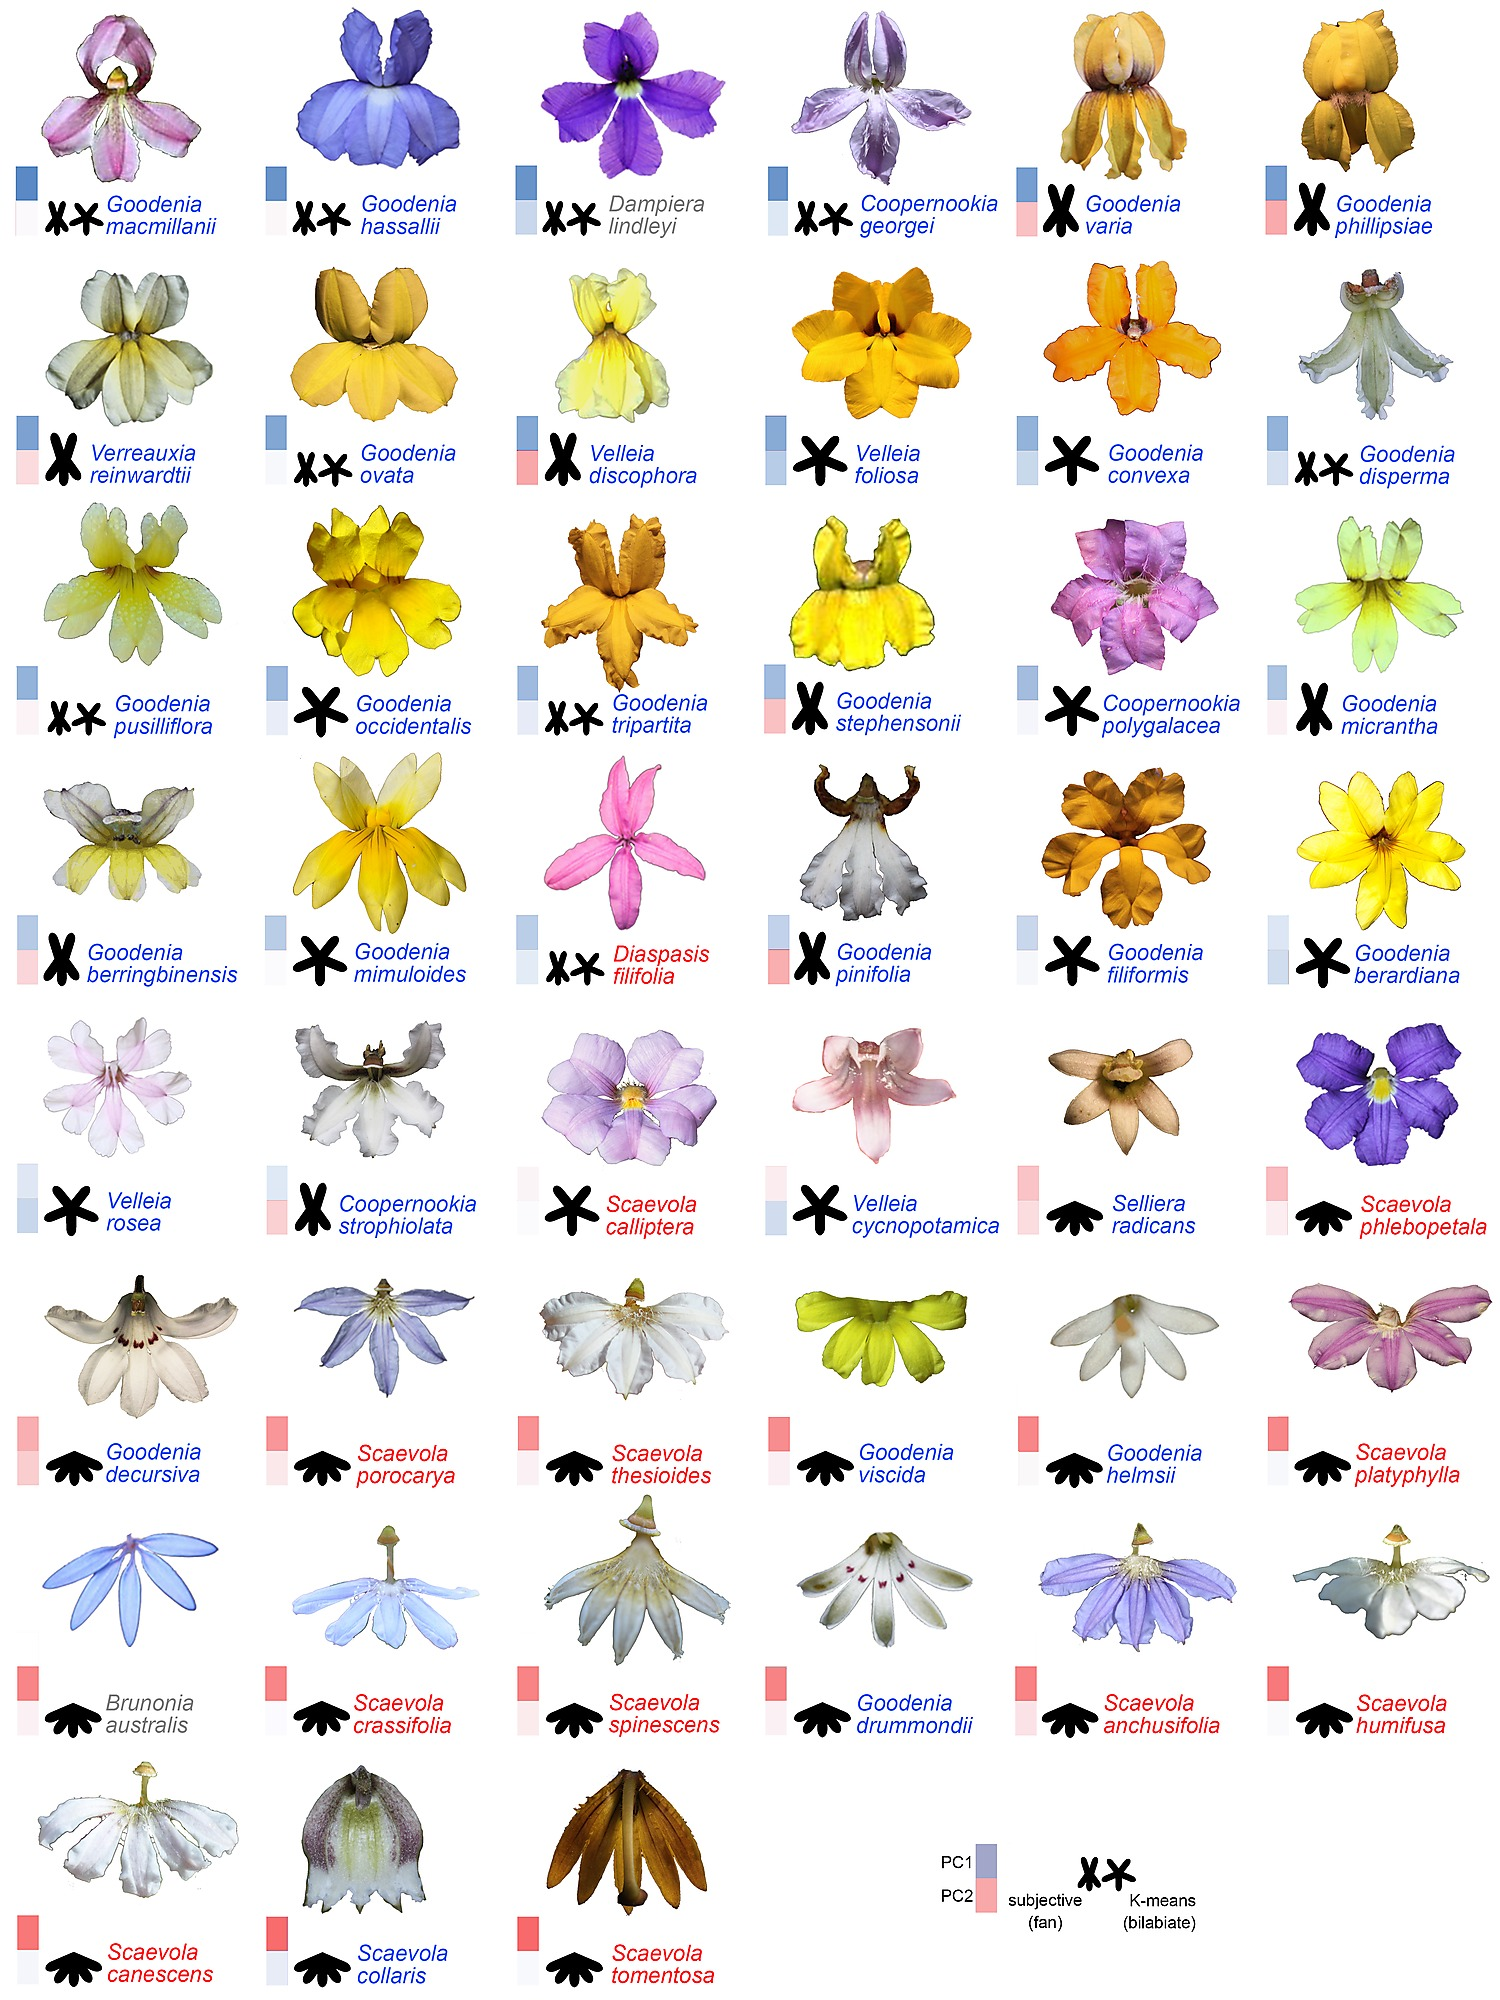 Characterizing Floral Symmetry in the Core Goodeniaceae with.